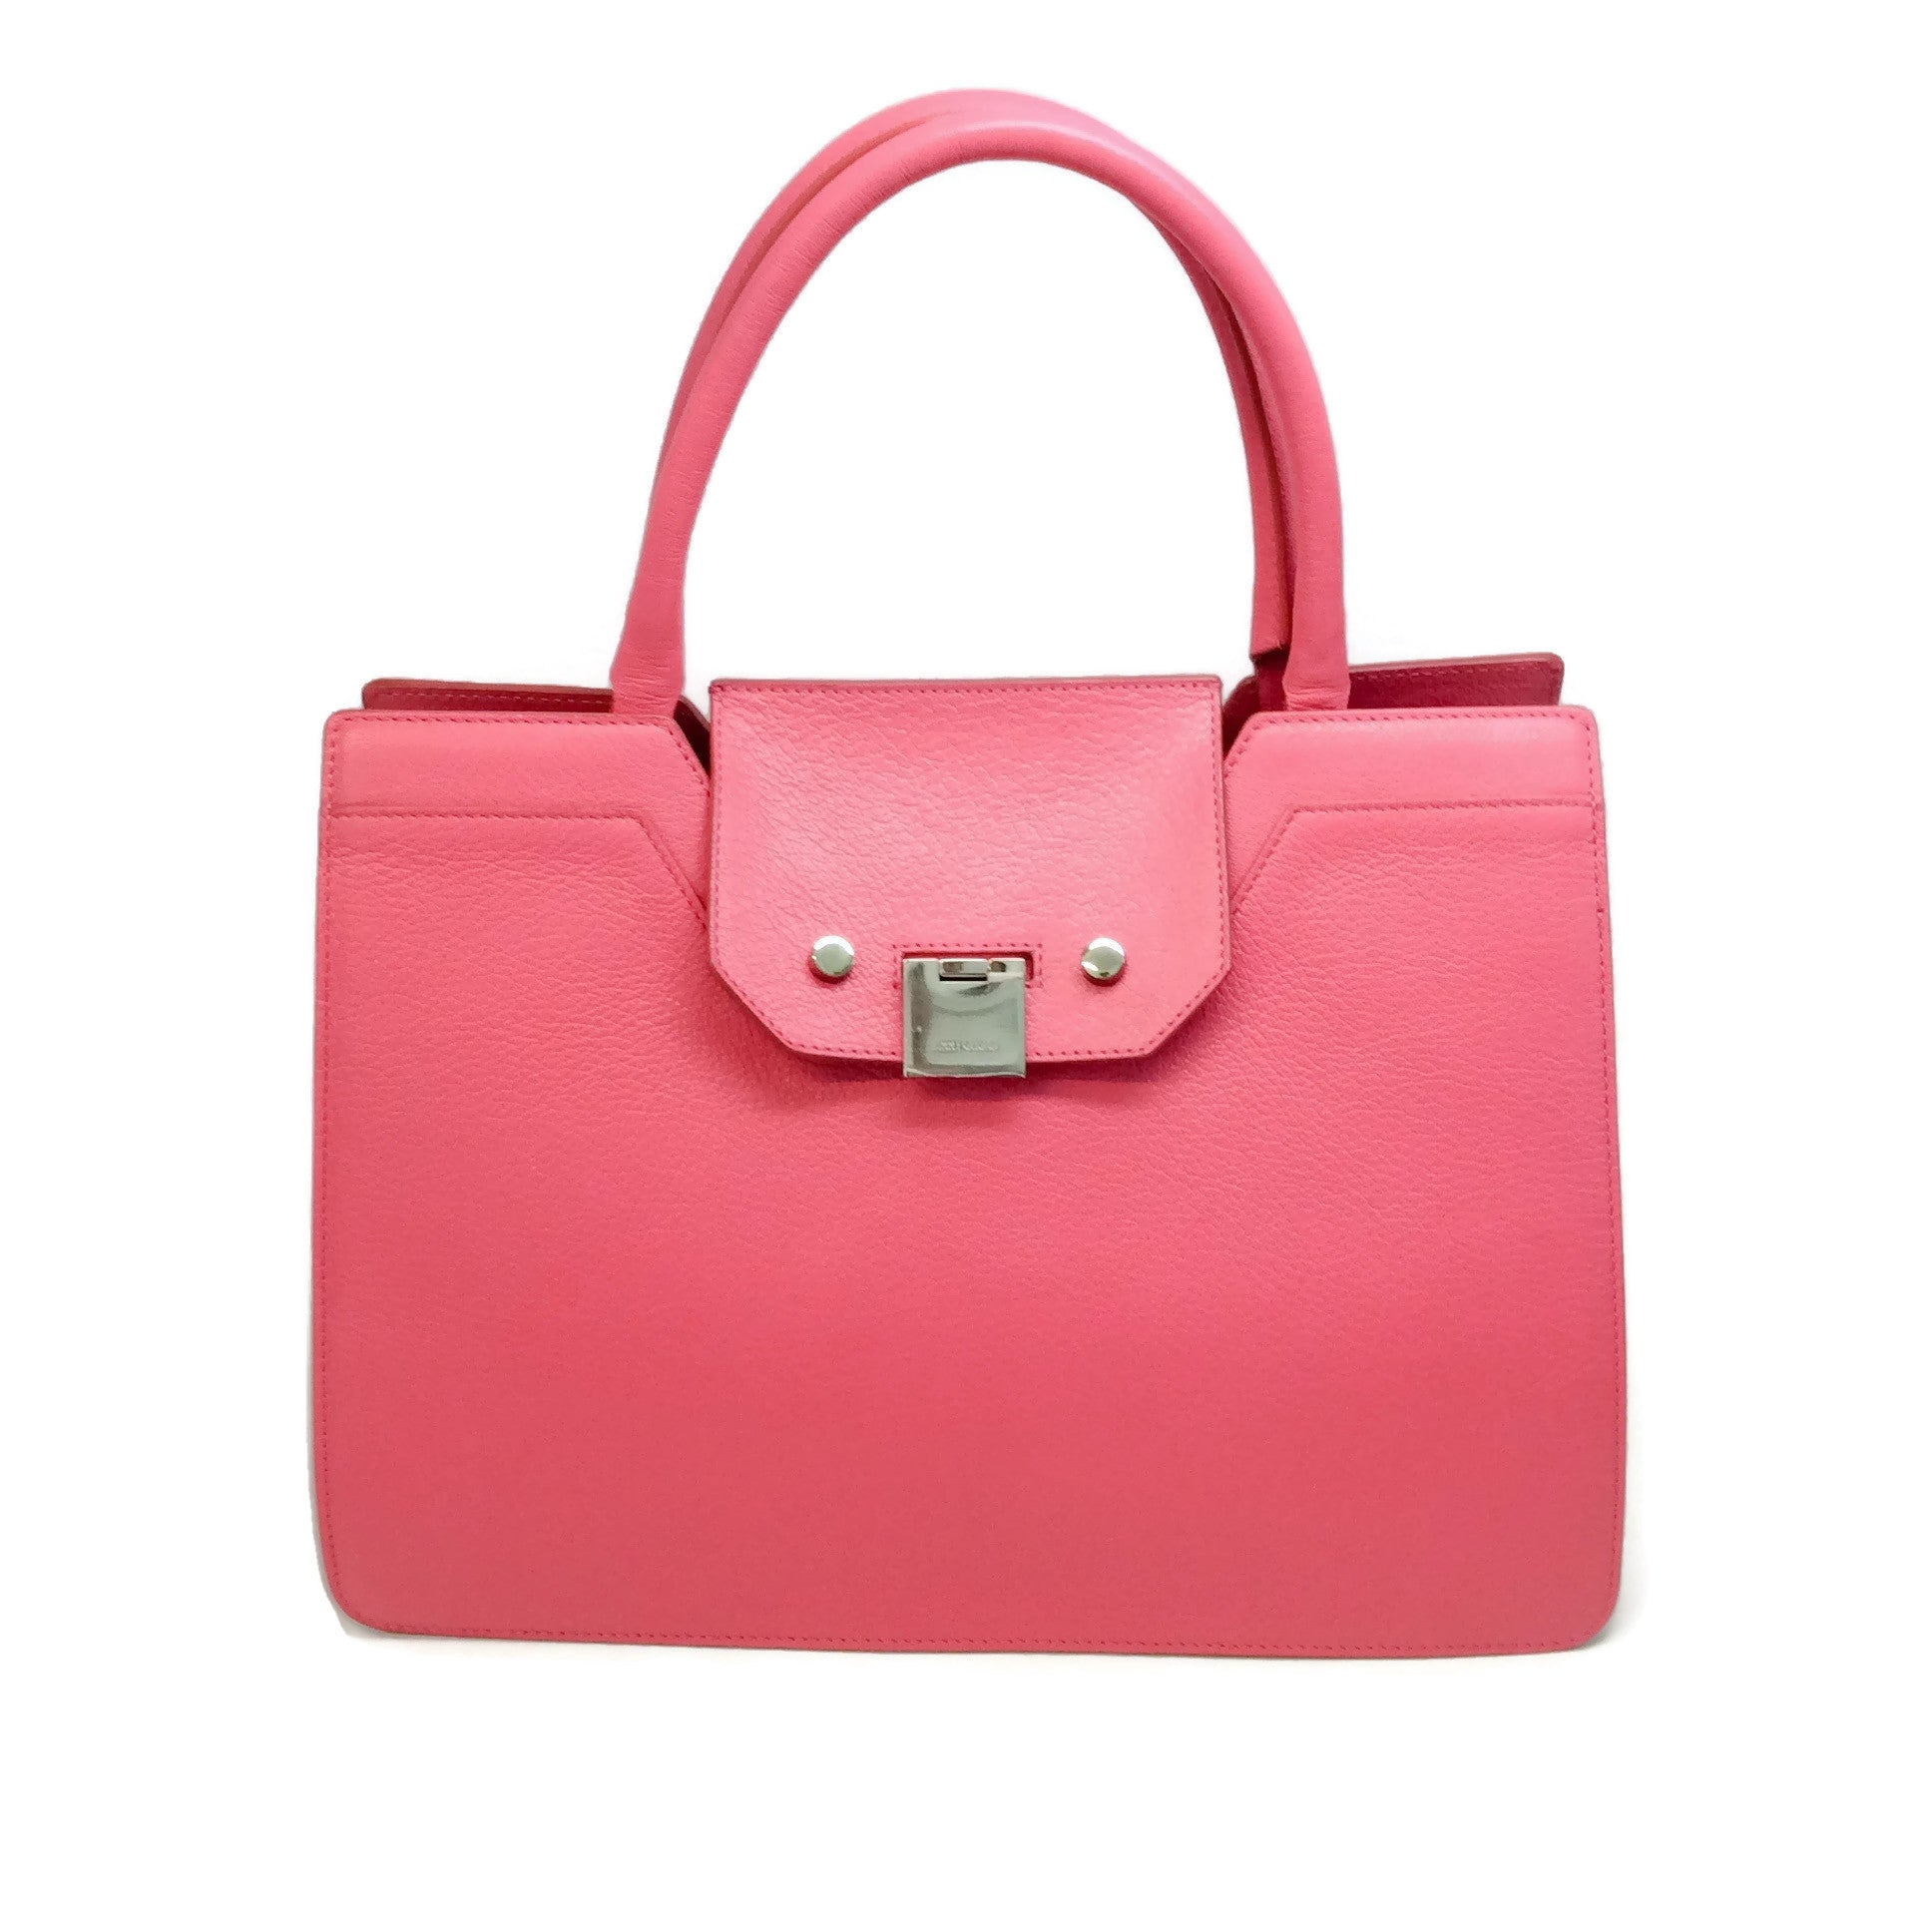 Jimmy Choo Rebel Flamingo Leather Tote